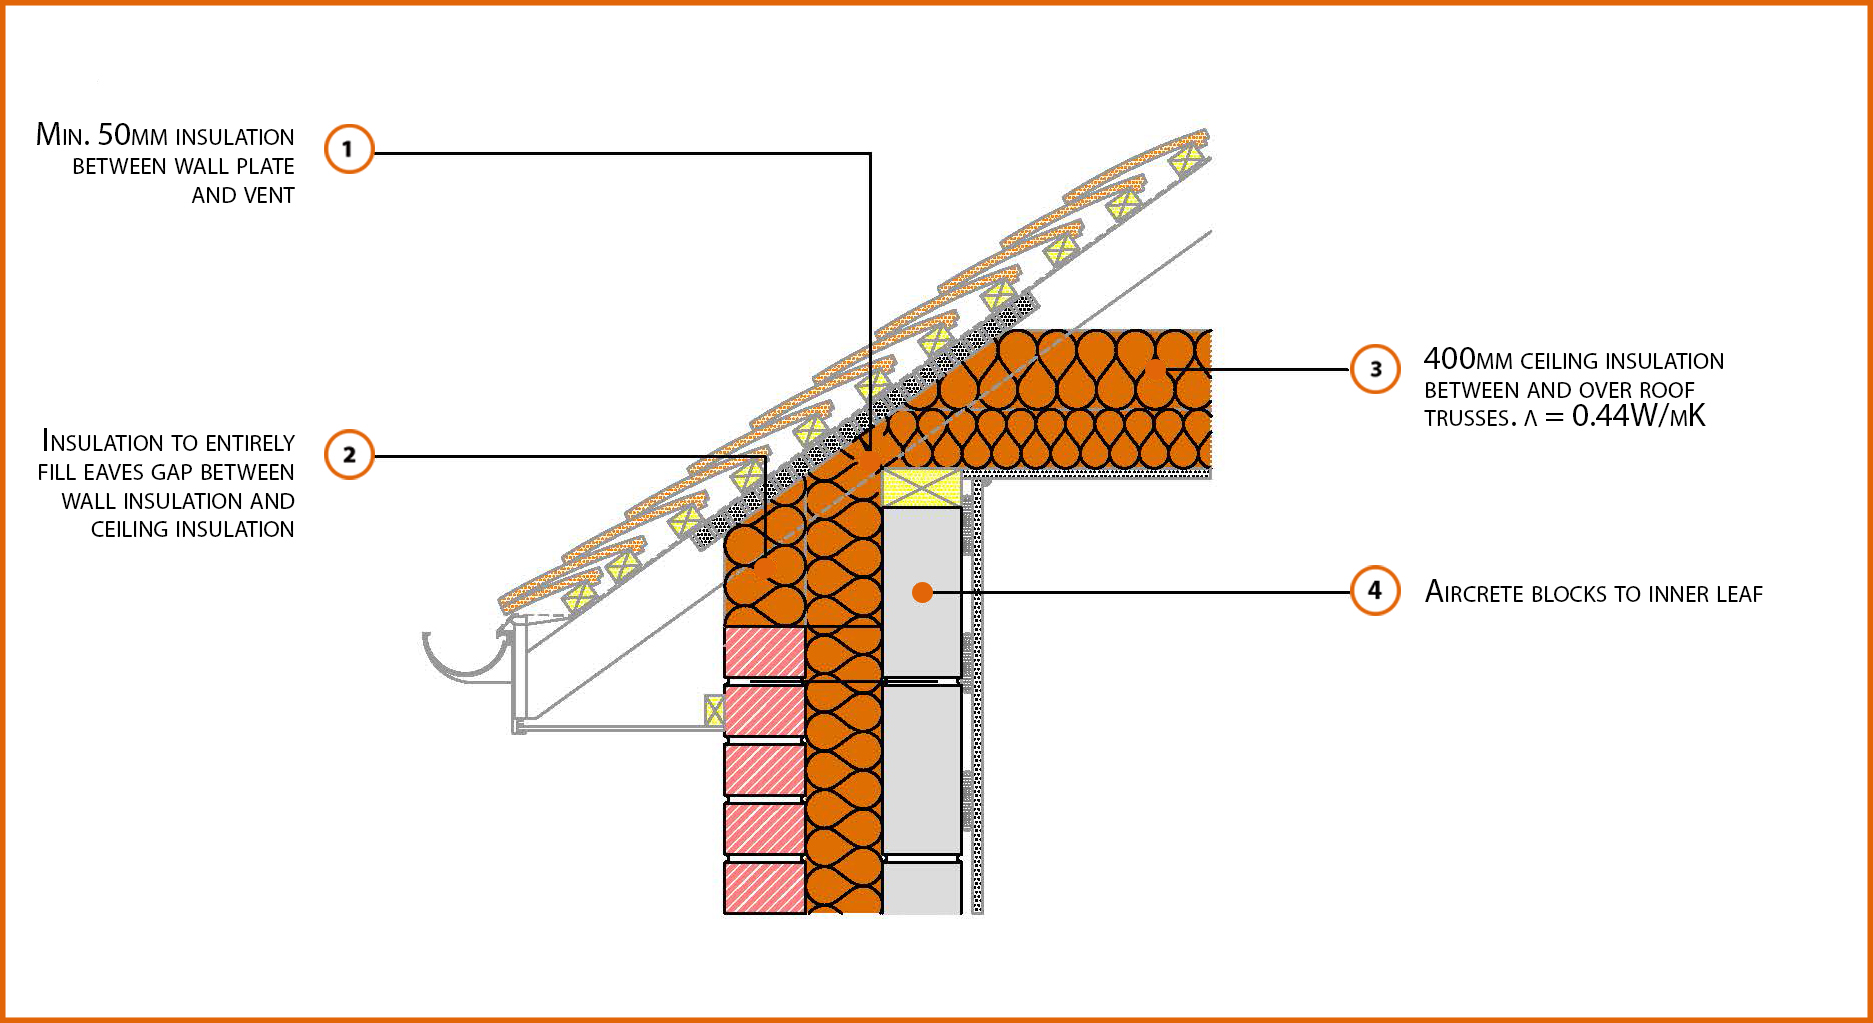 E10mcff6 Pitched Roof Eaves Insulation At Ceiling Level